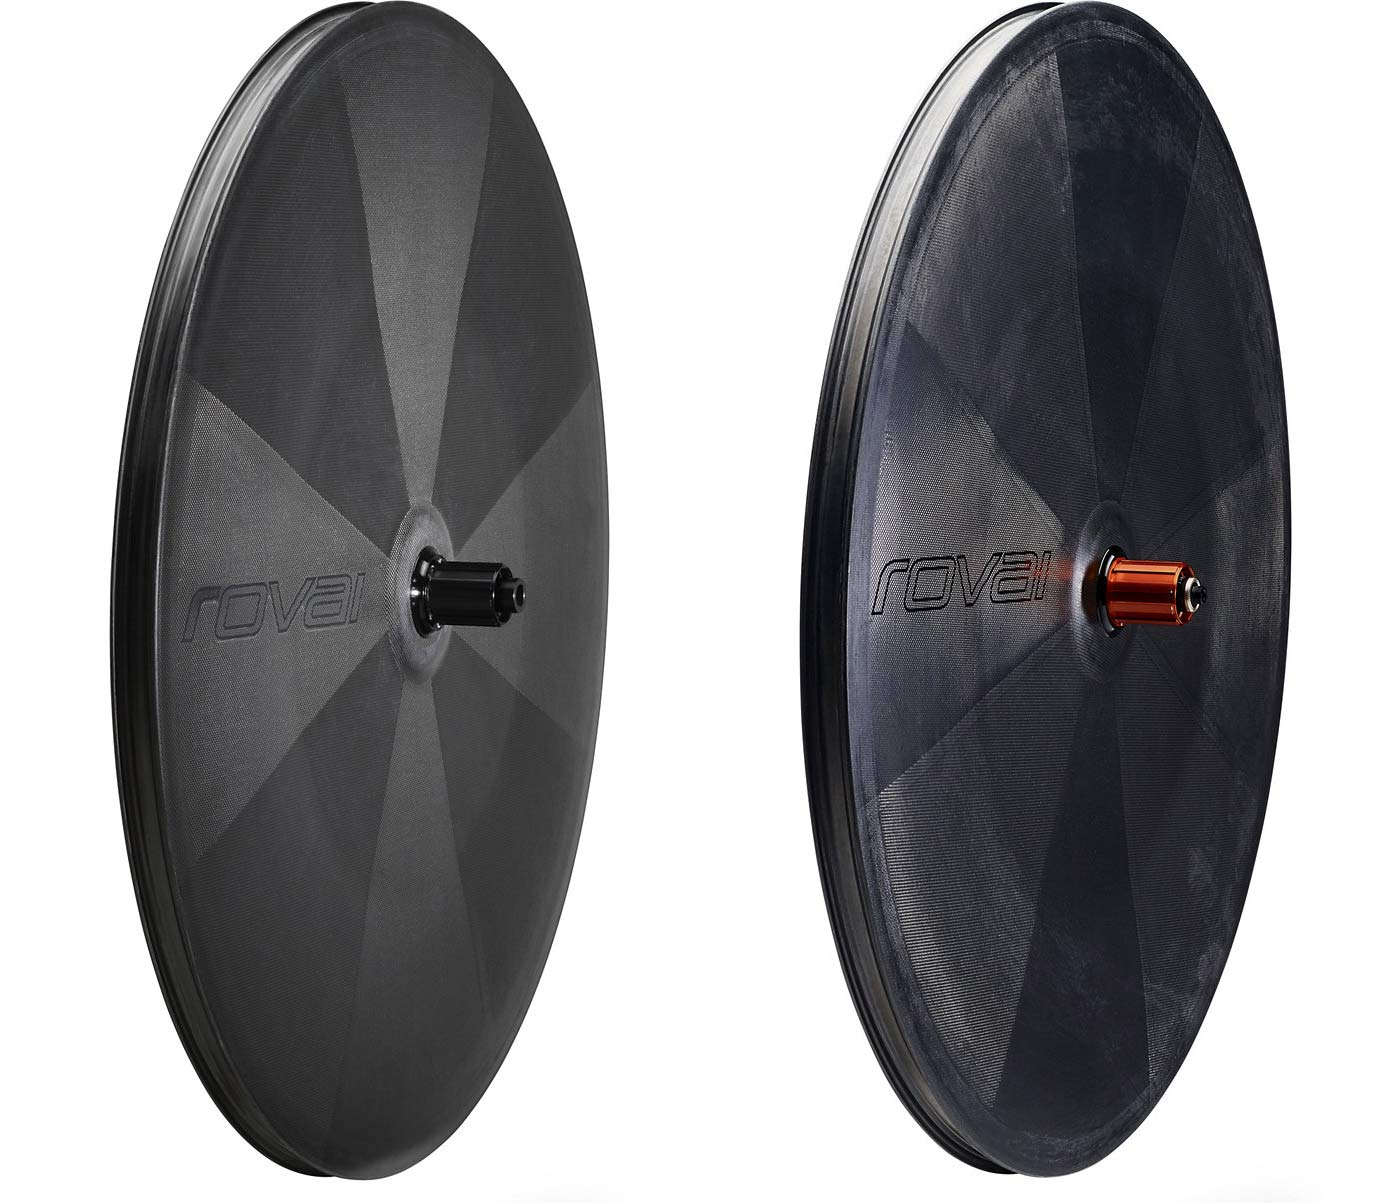 Roval's New 321 Wheel is the Lightest Disc Wheel on the Market 3